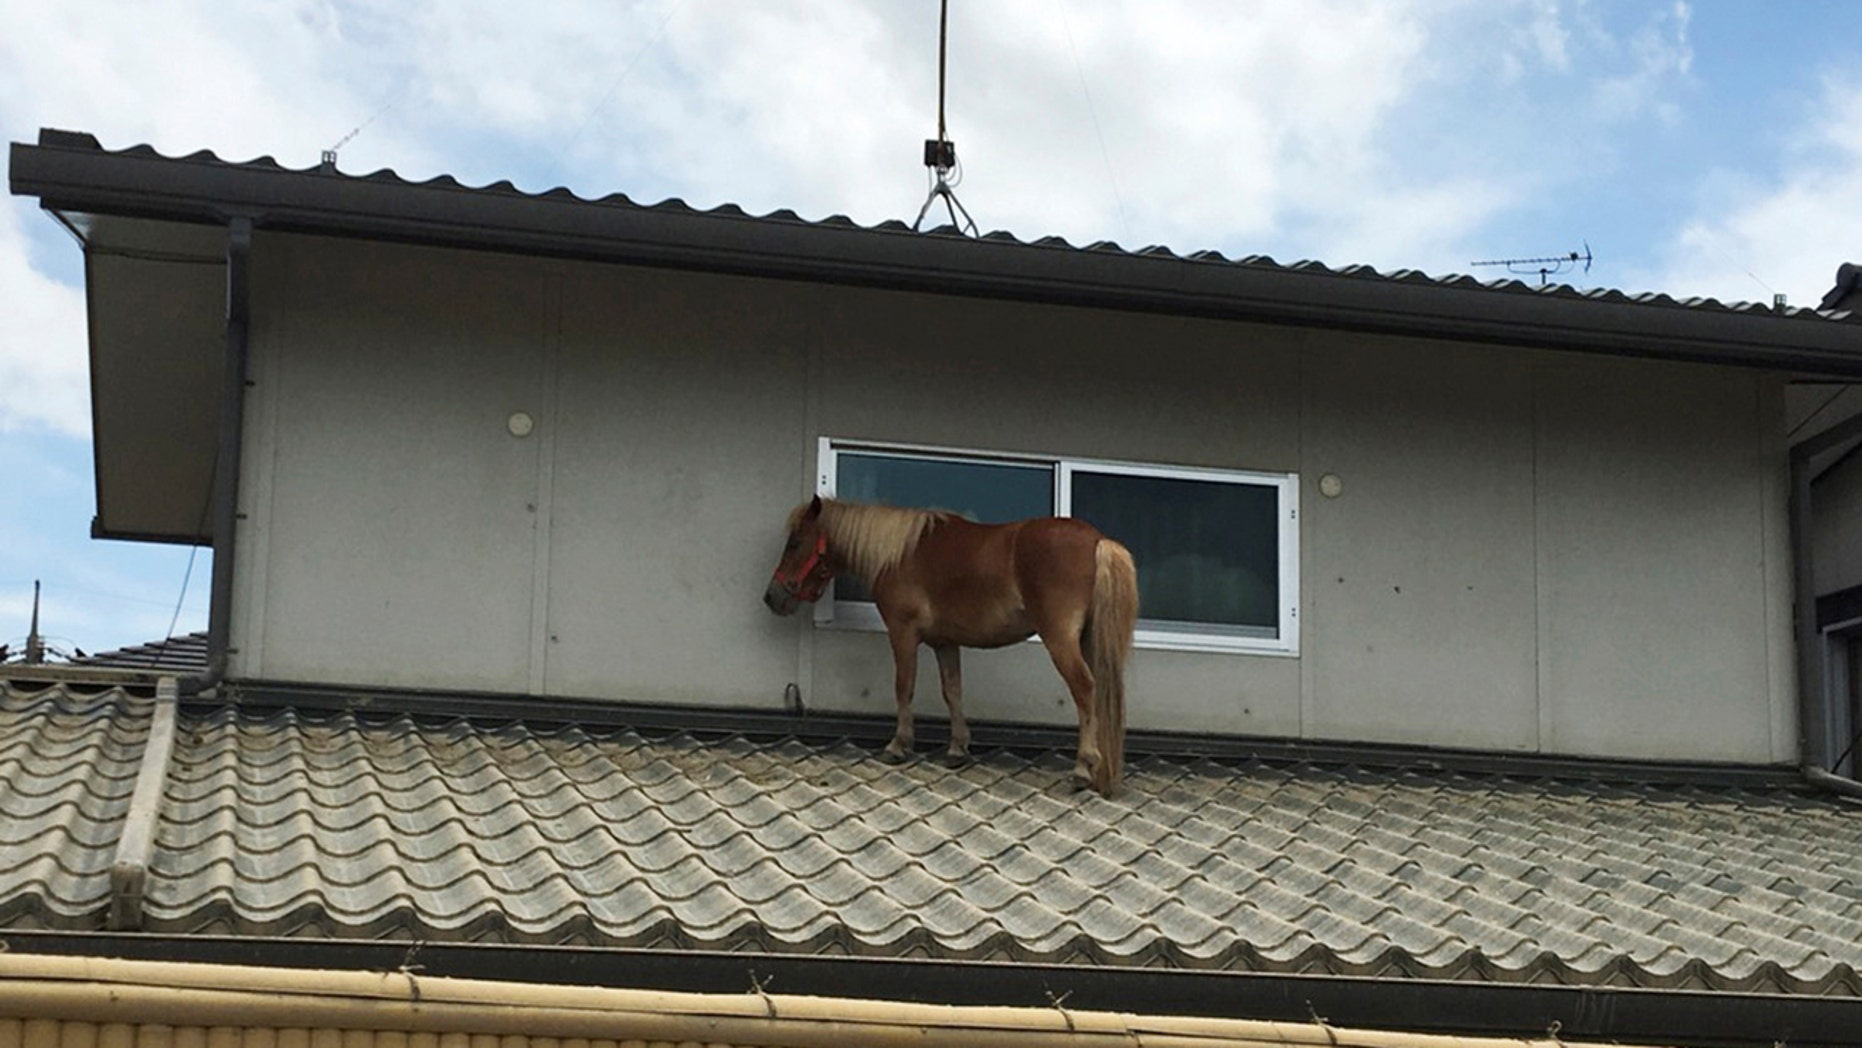 A horse ended up stranded on a rooftop after torrential rain in Kurashiki, Japan.